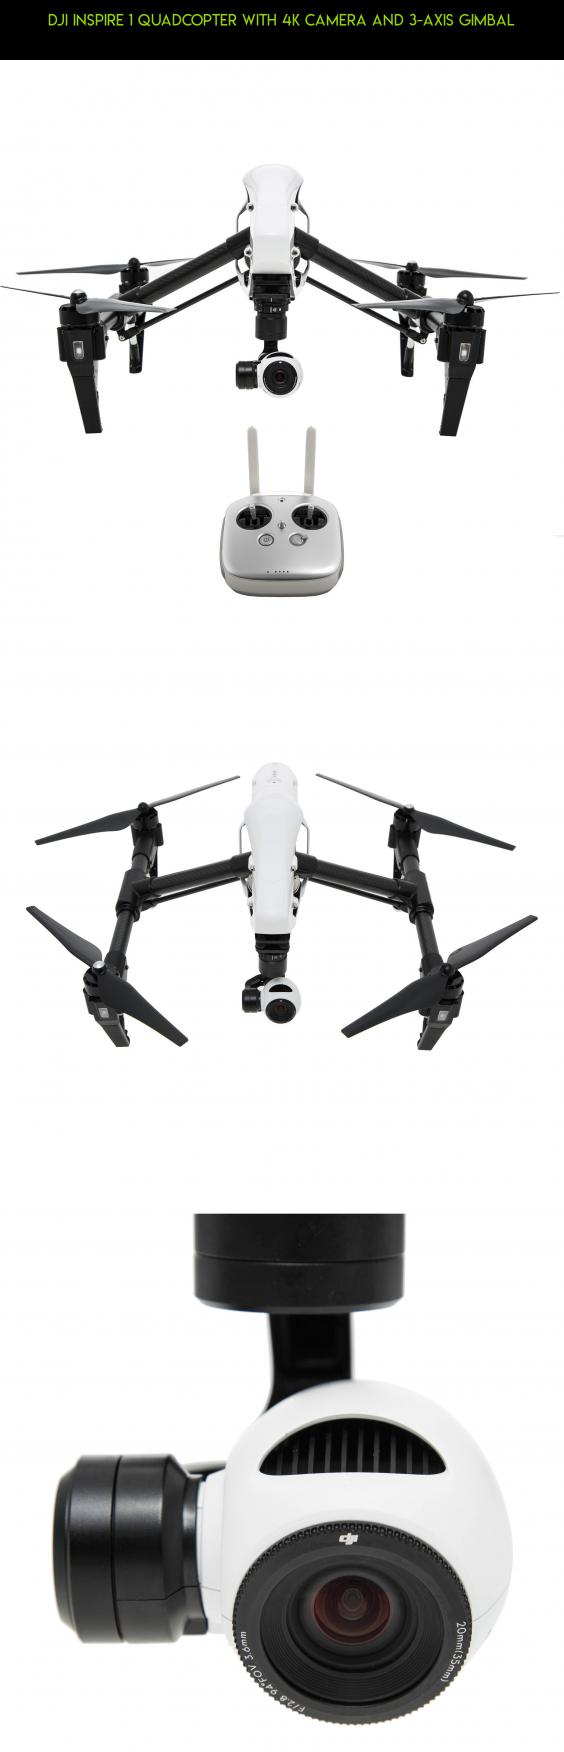 Dji Inspire 1 Quadcopter With 4k Camera And 3 Axis Gimbal Pro Zenmuse X5 Professional Shopping